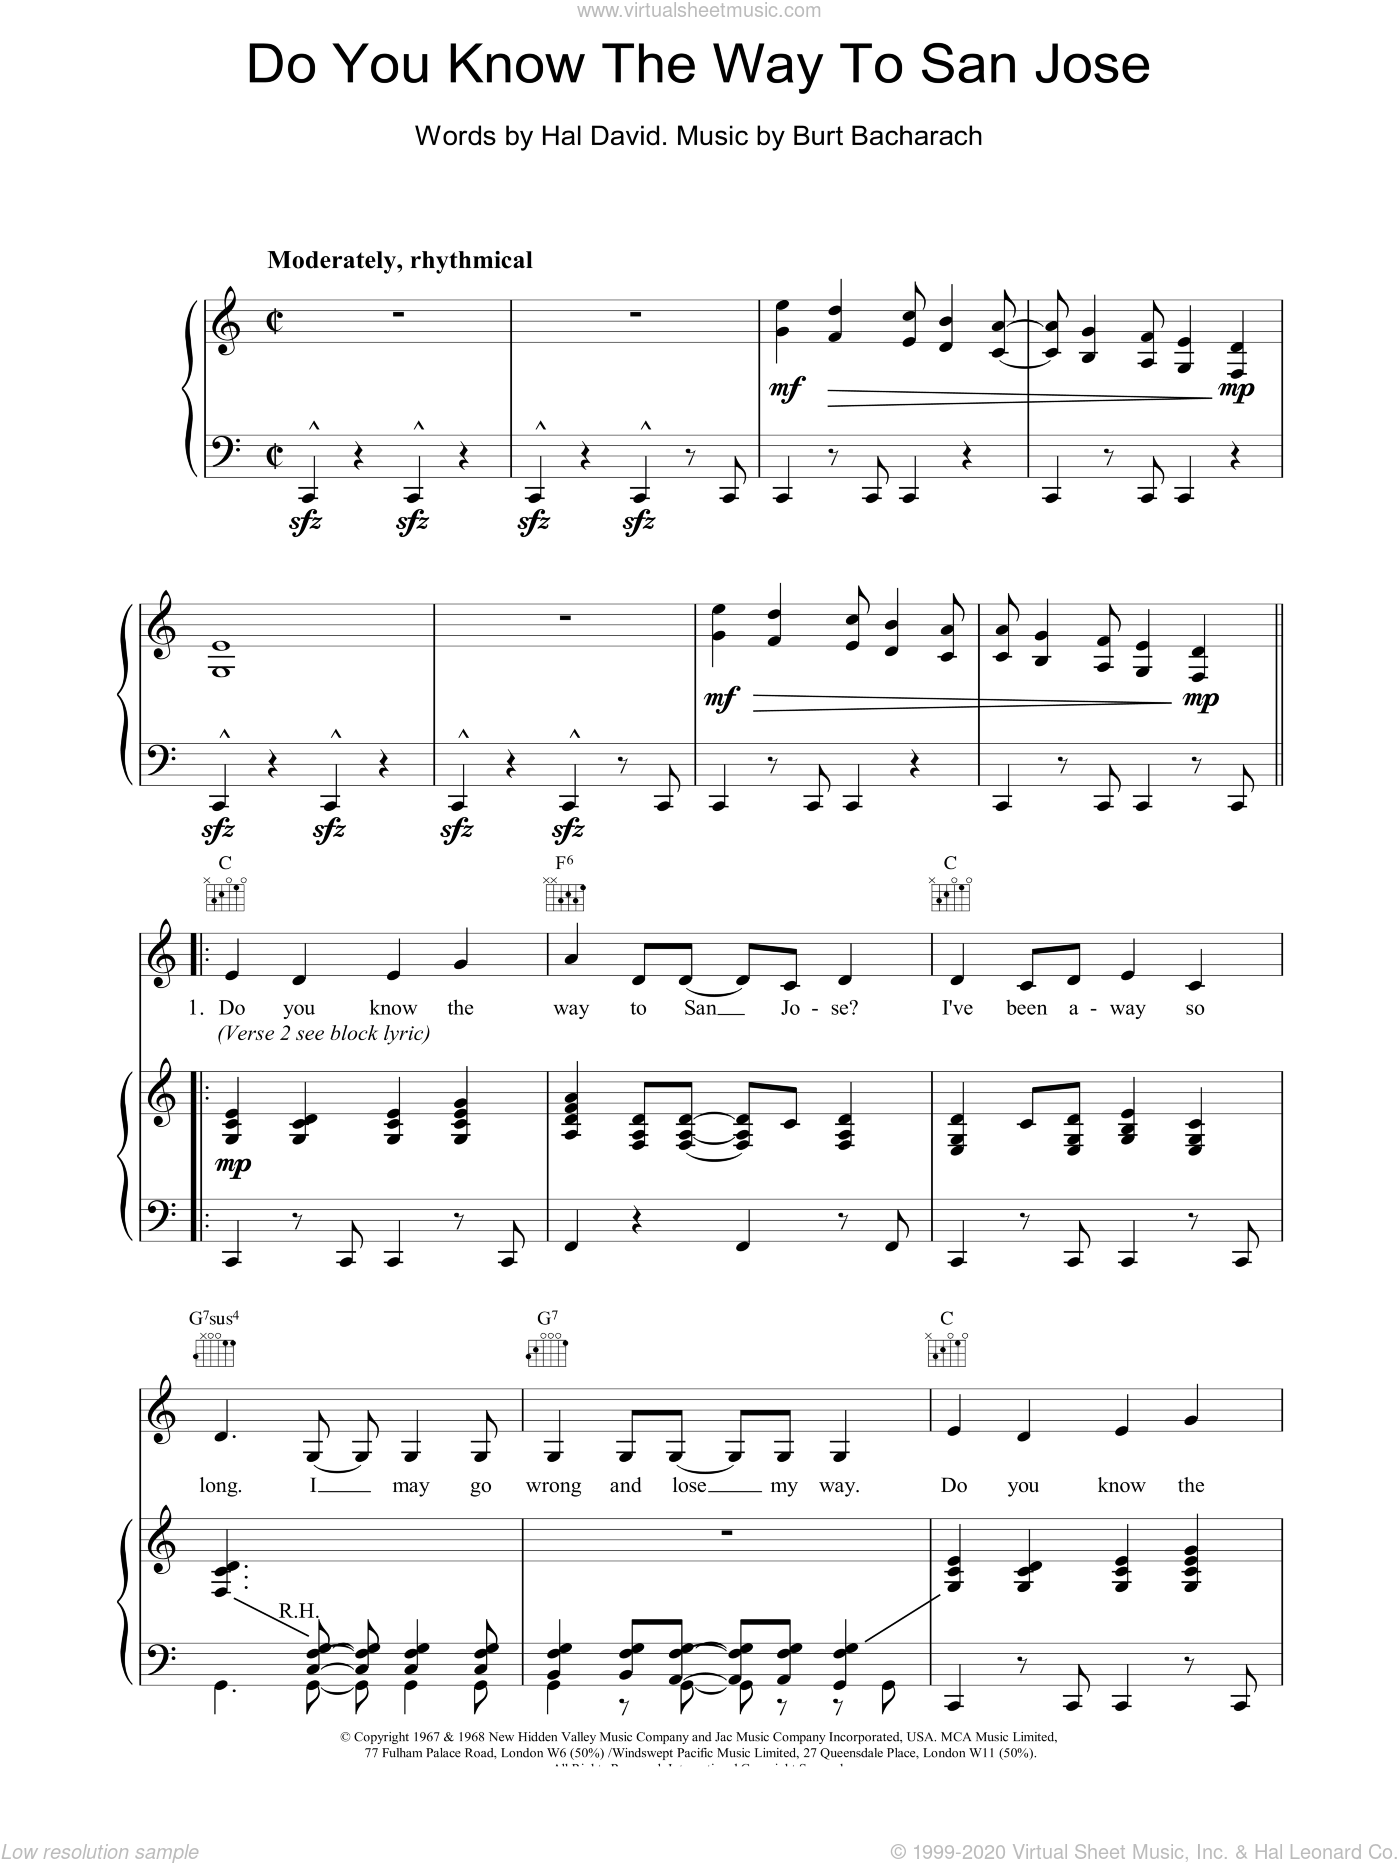 Do You Know The Way To San Jose sheet music for voice, piano or guitar by Burt Bacharach